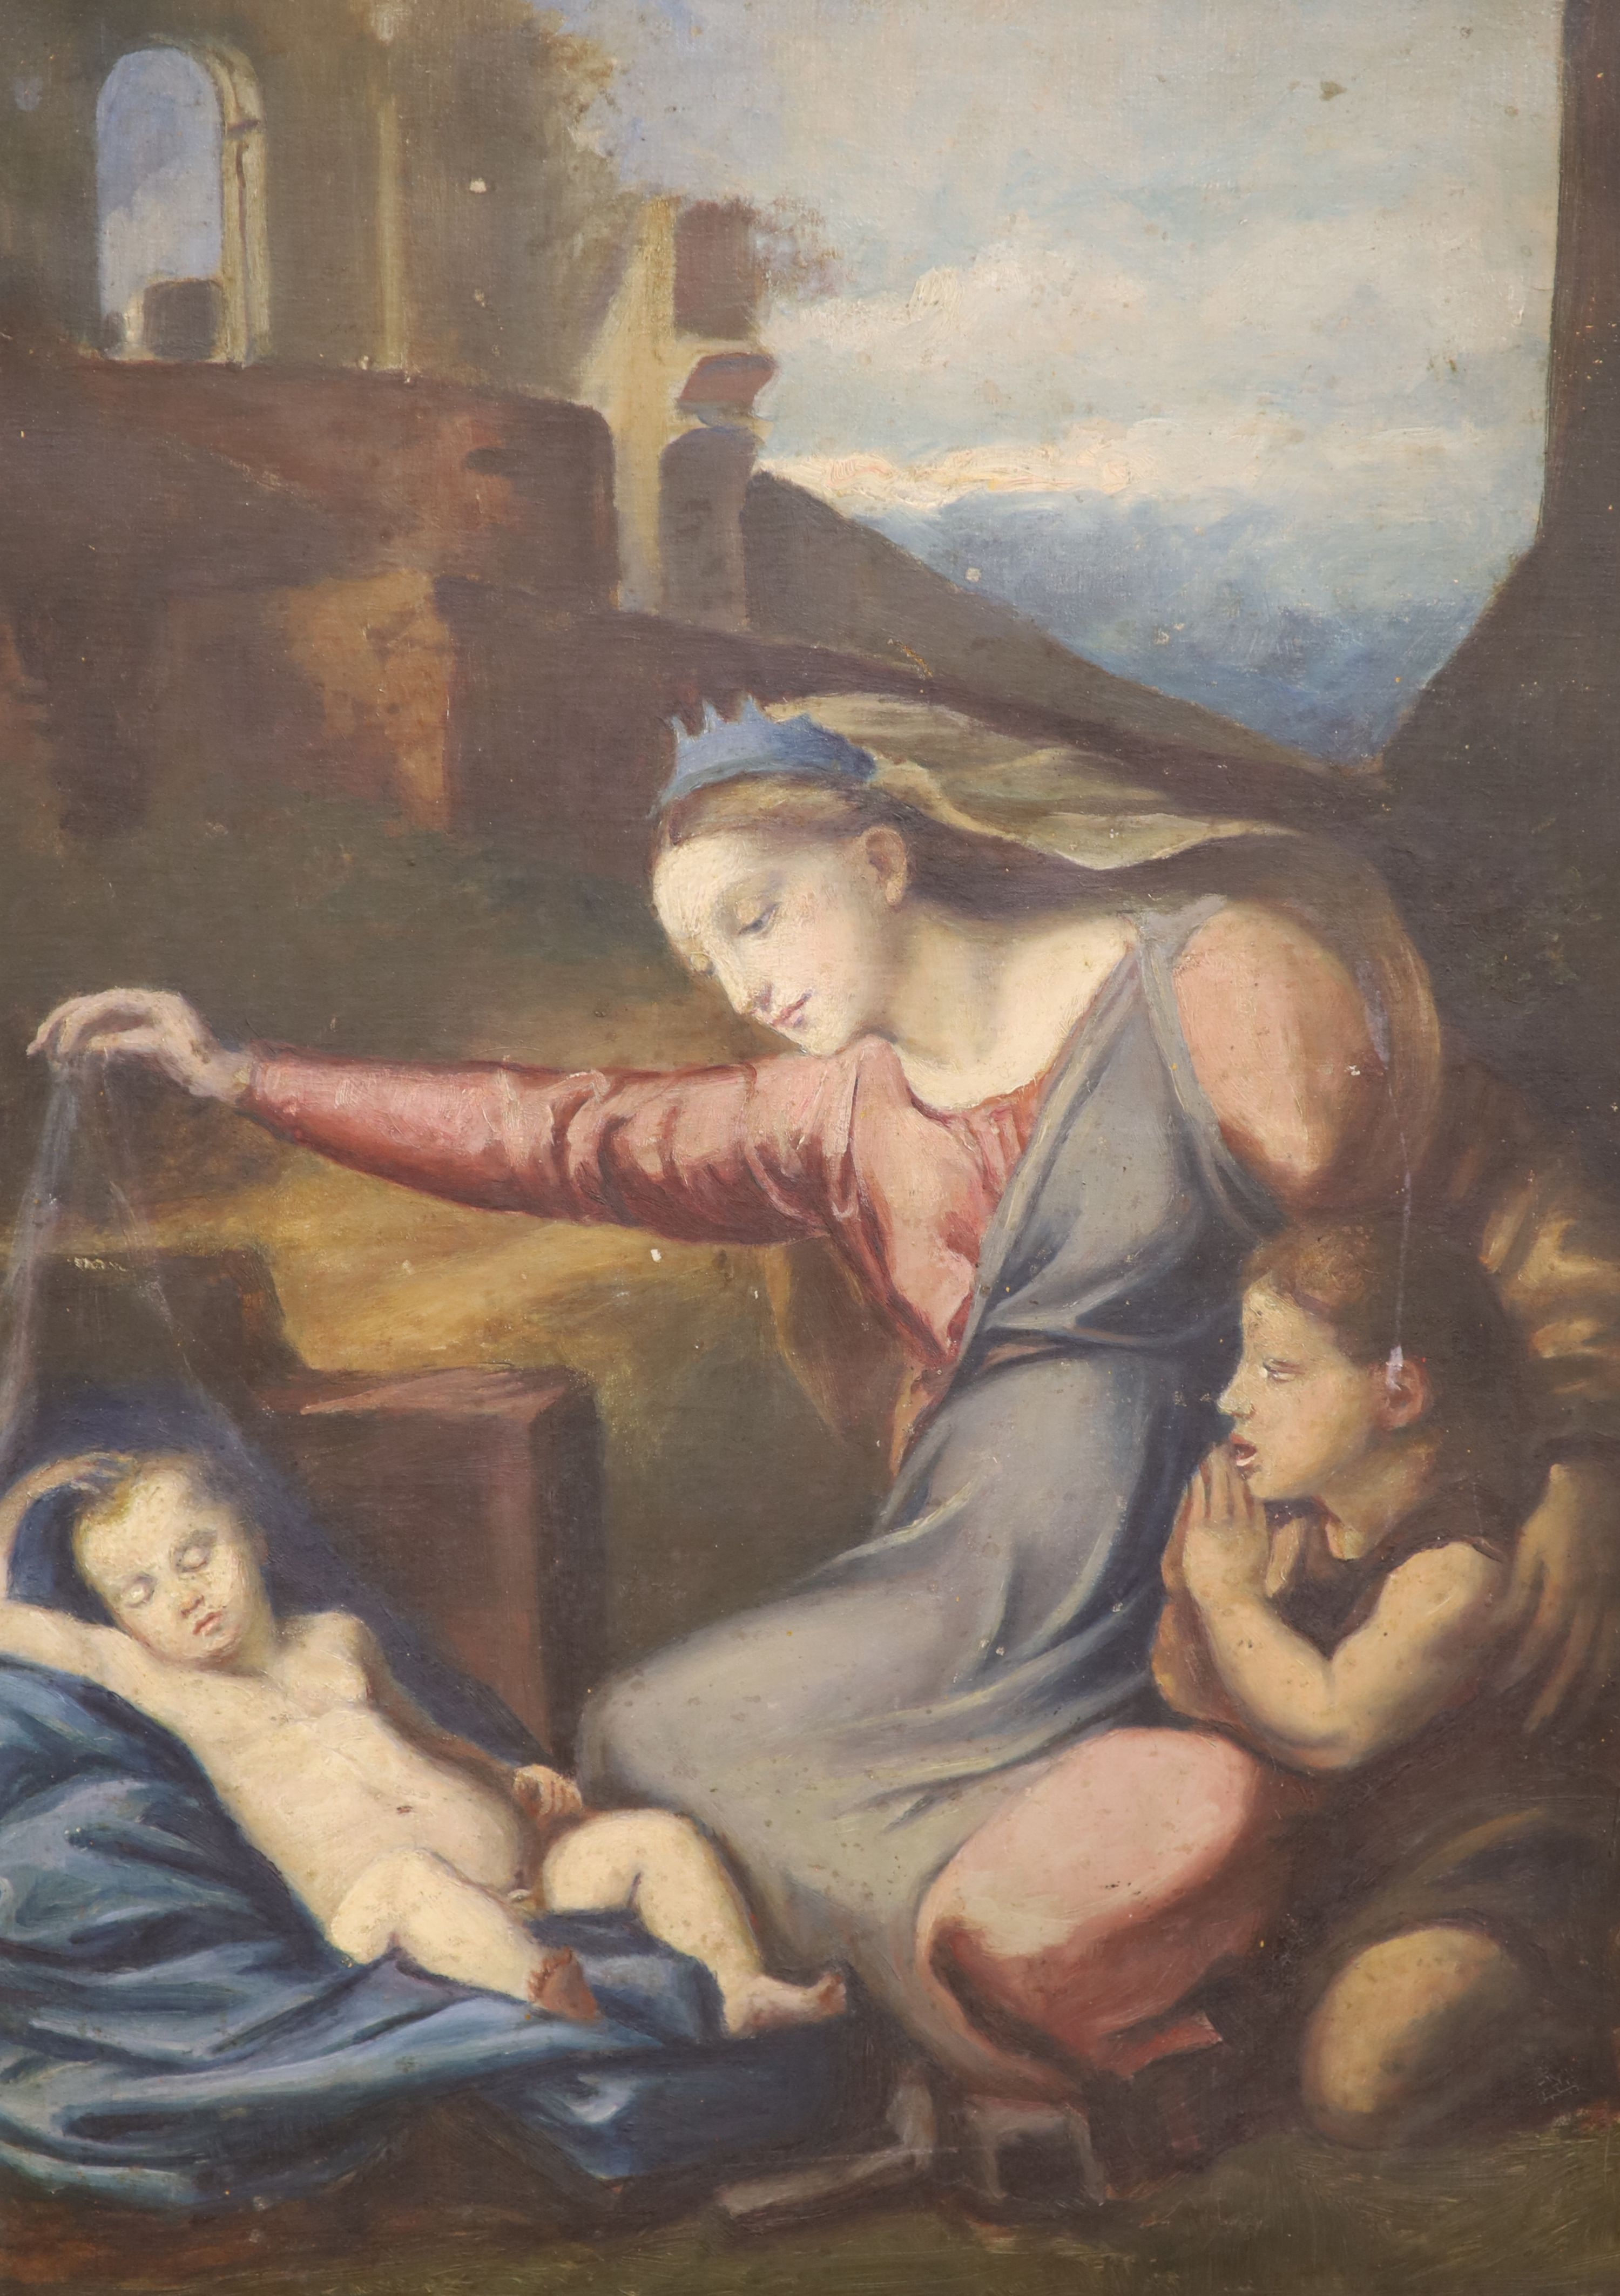 19th century French School, oil on canvas, Virgin and child with John the Baptist, 66 x 47cm